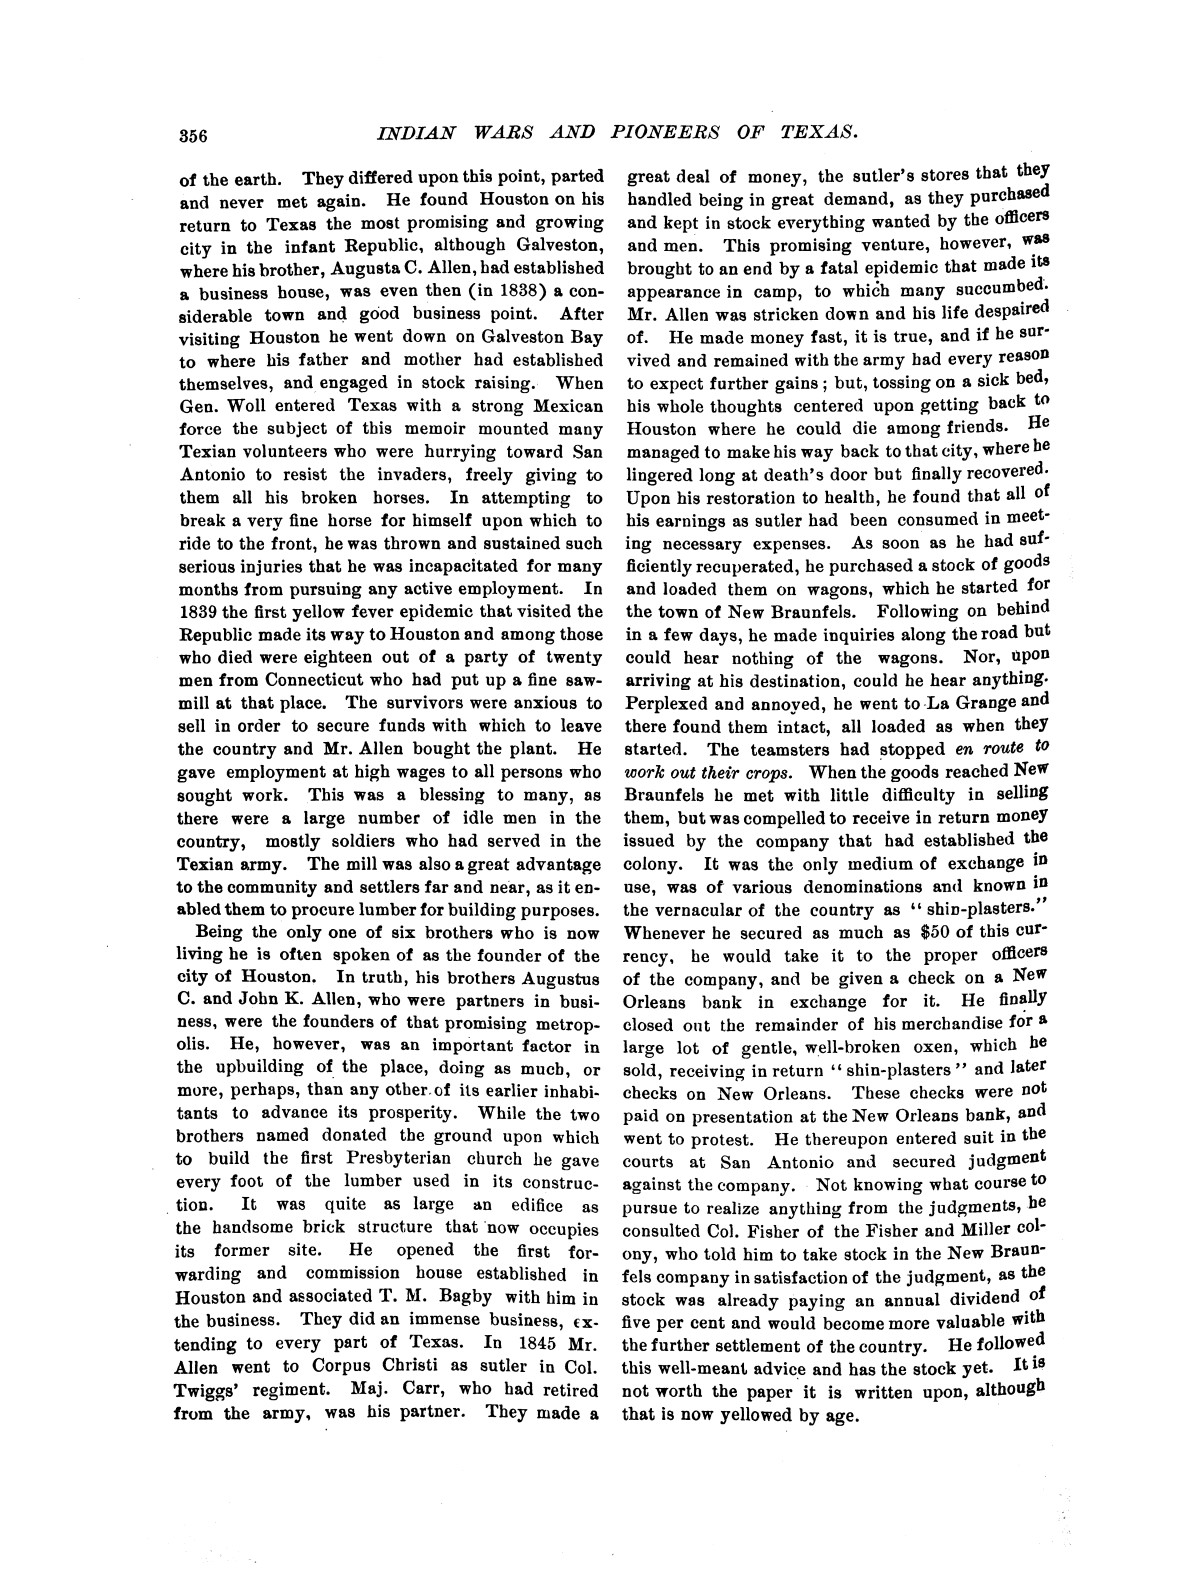 Indian wars and pioneers of Texas / by John Henry Brown.                                                                                                      [Sequence #]: 425 of 894